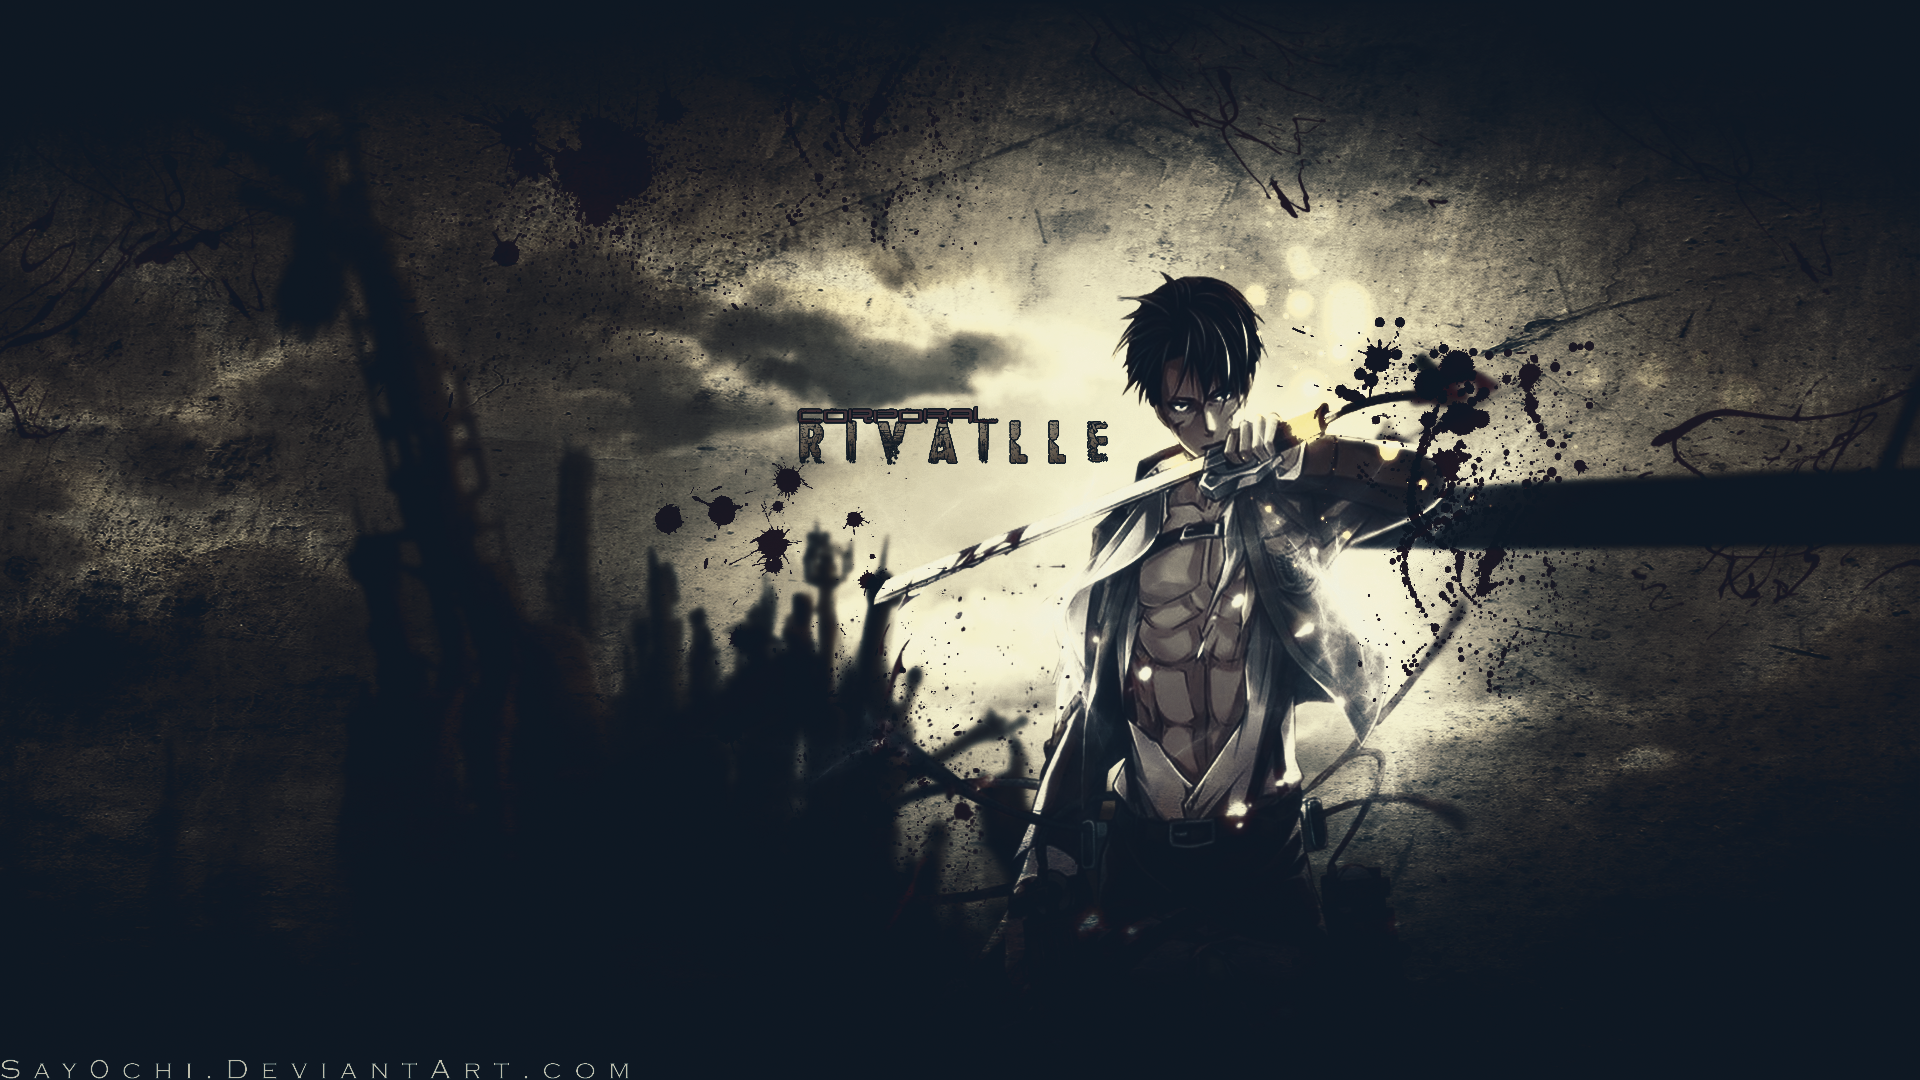 Wallpapers for Levi - Resolution 1920x1080 px